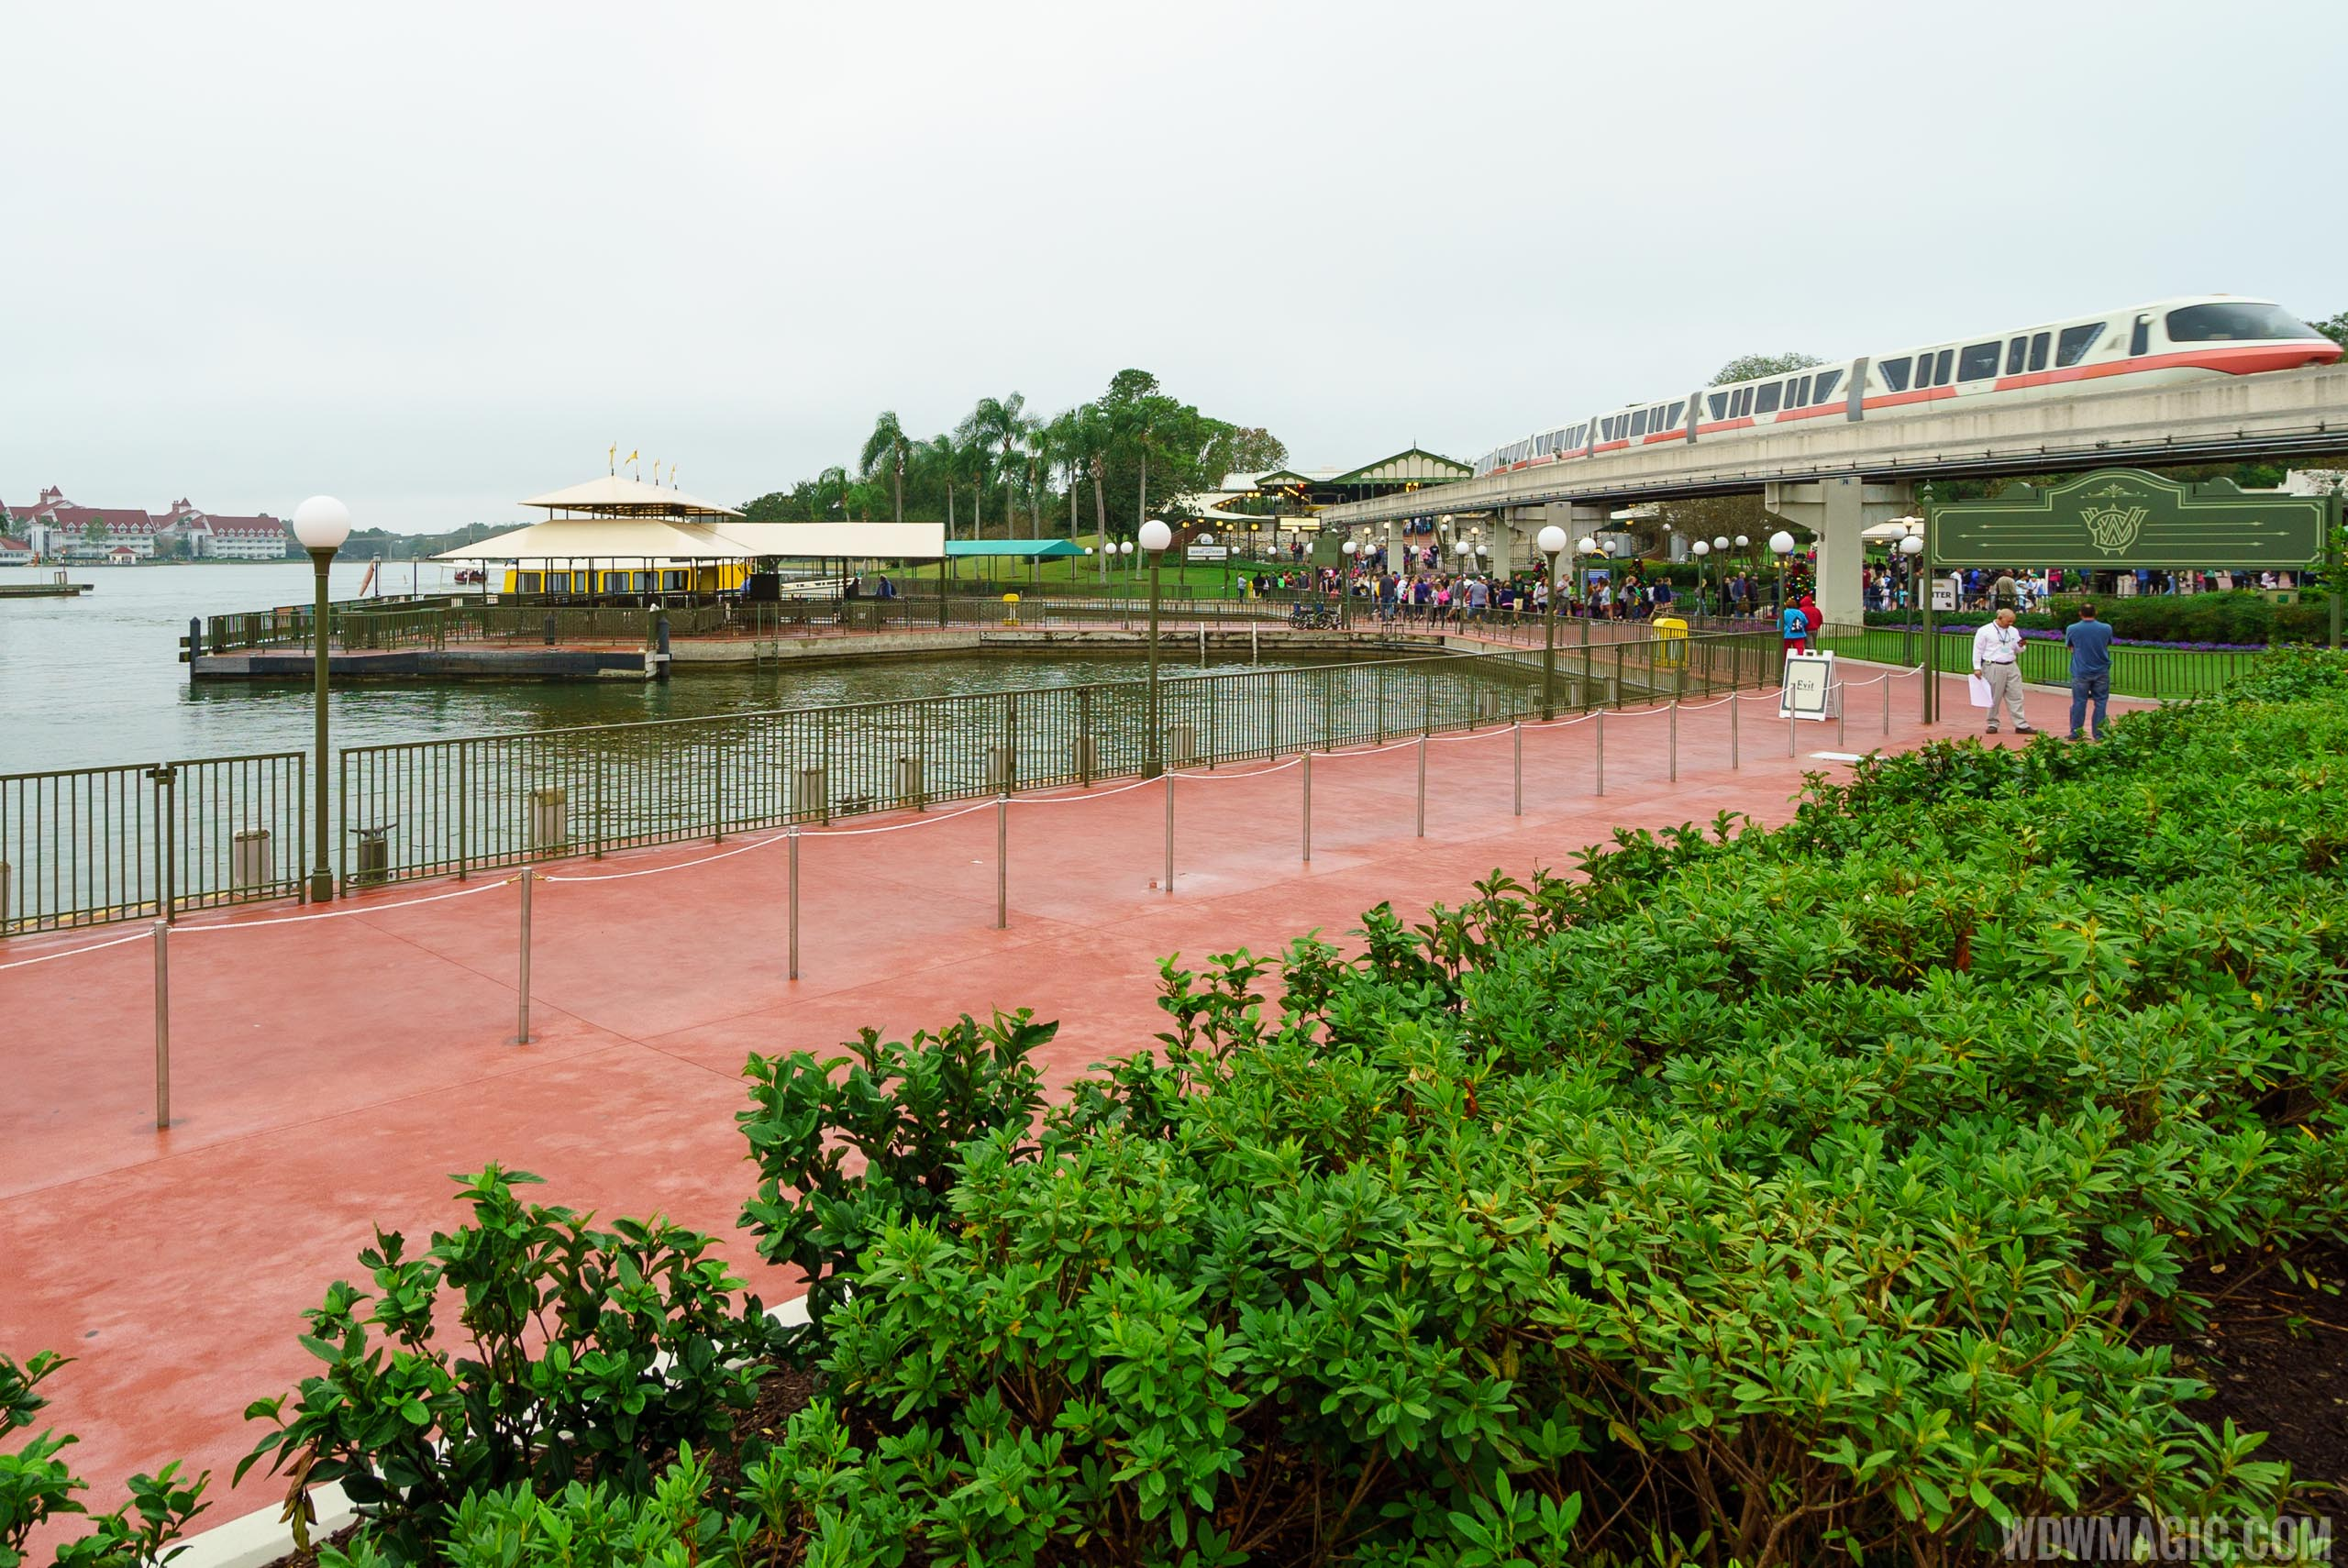 The new entry and exit walkway from the Ferryboat